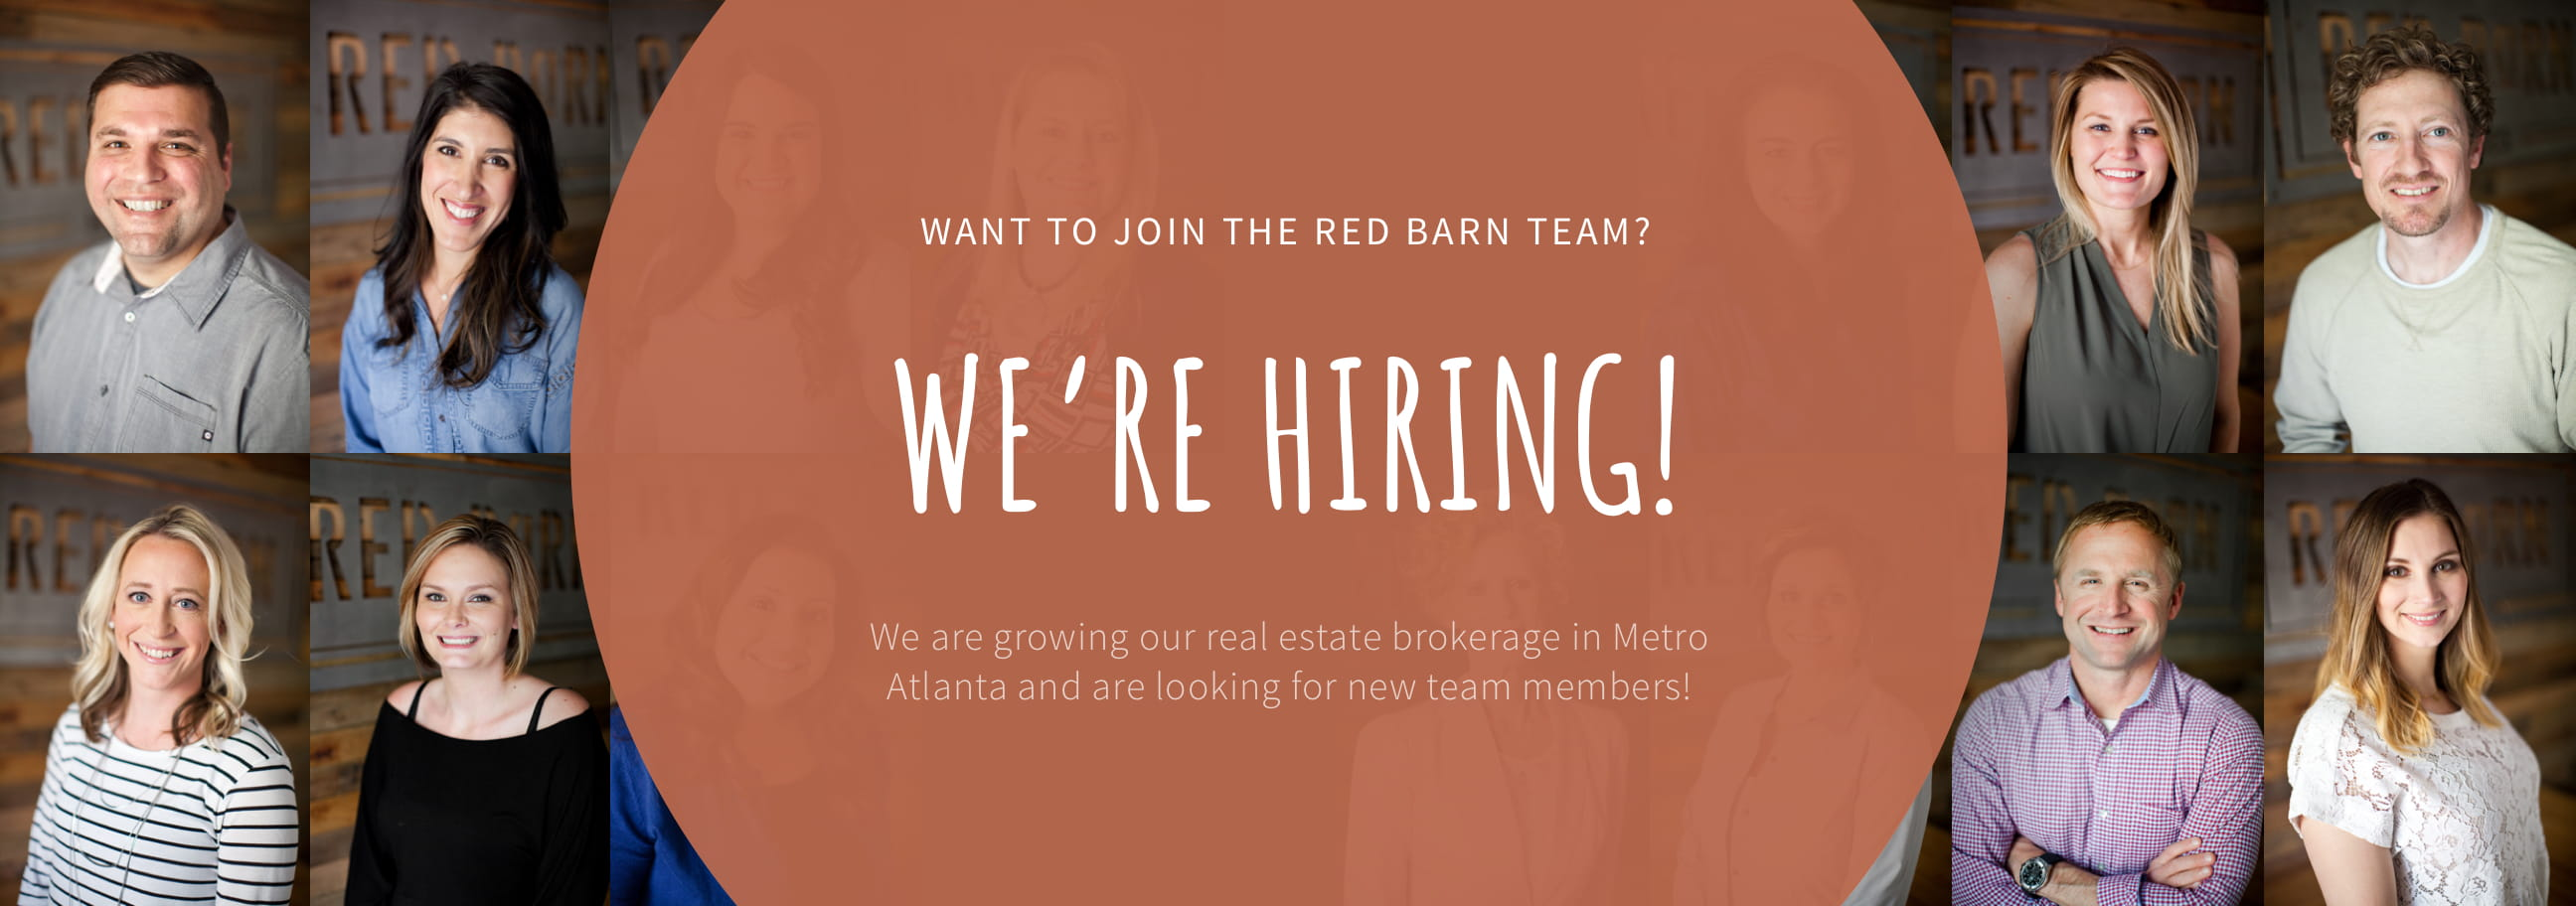 Red Barn is Hiring. We are growing our real estate brokerage in Metro Atlanta and are looking for new team members!